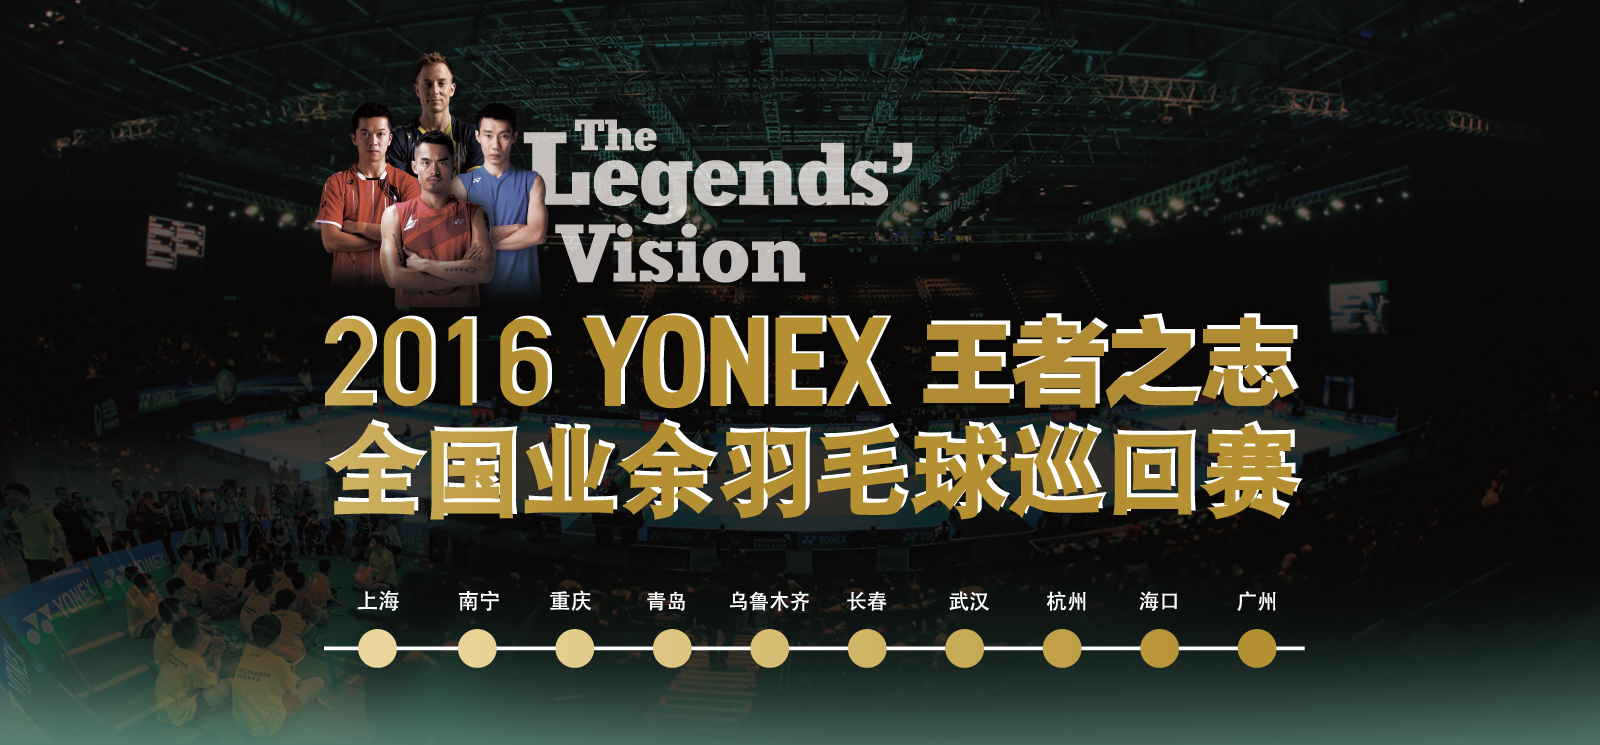 The Legends vision 2016